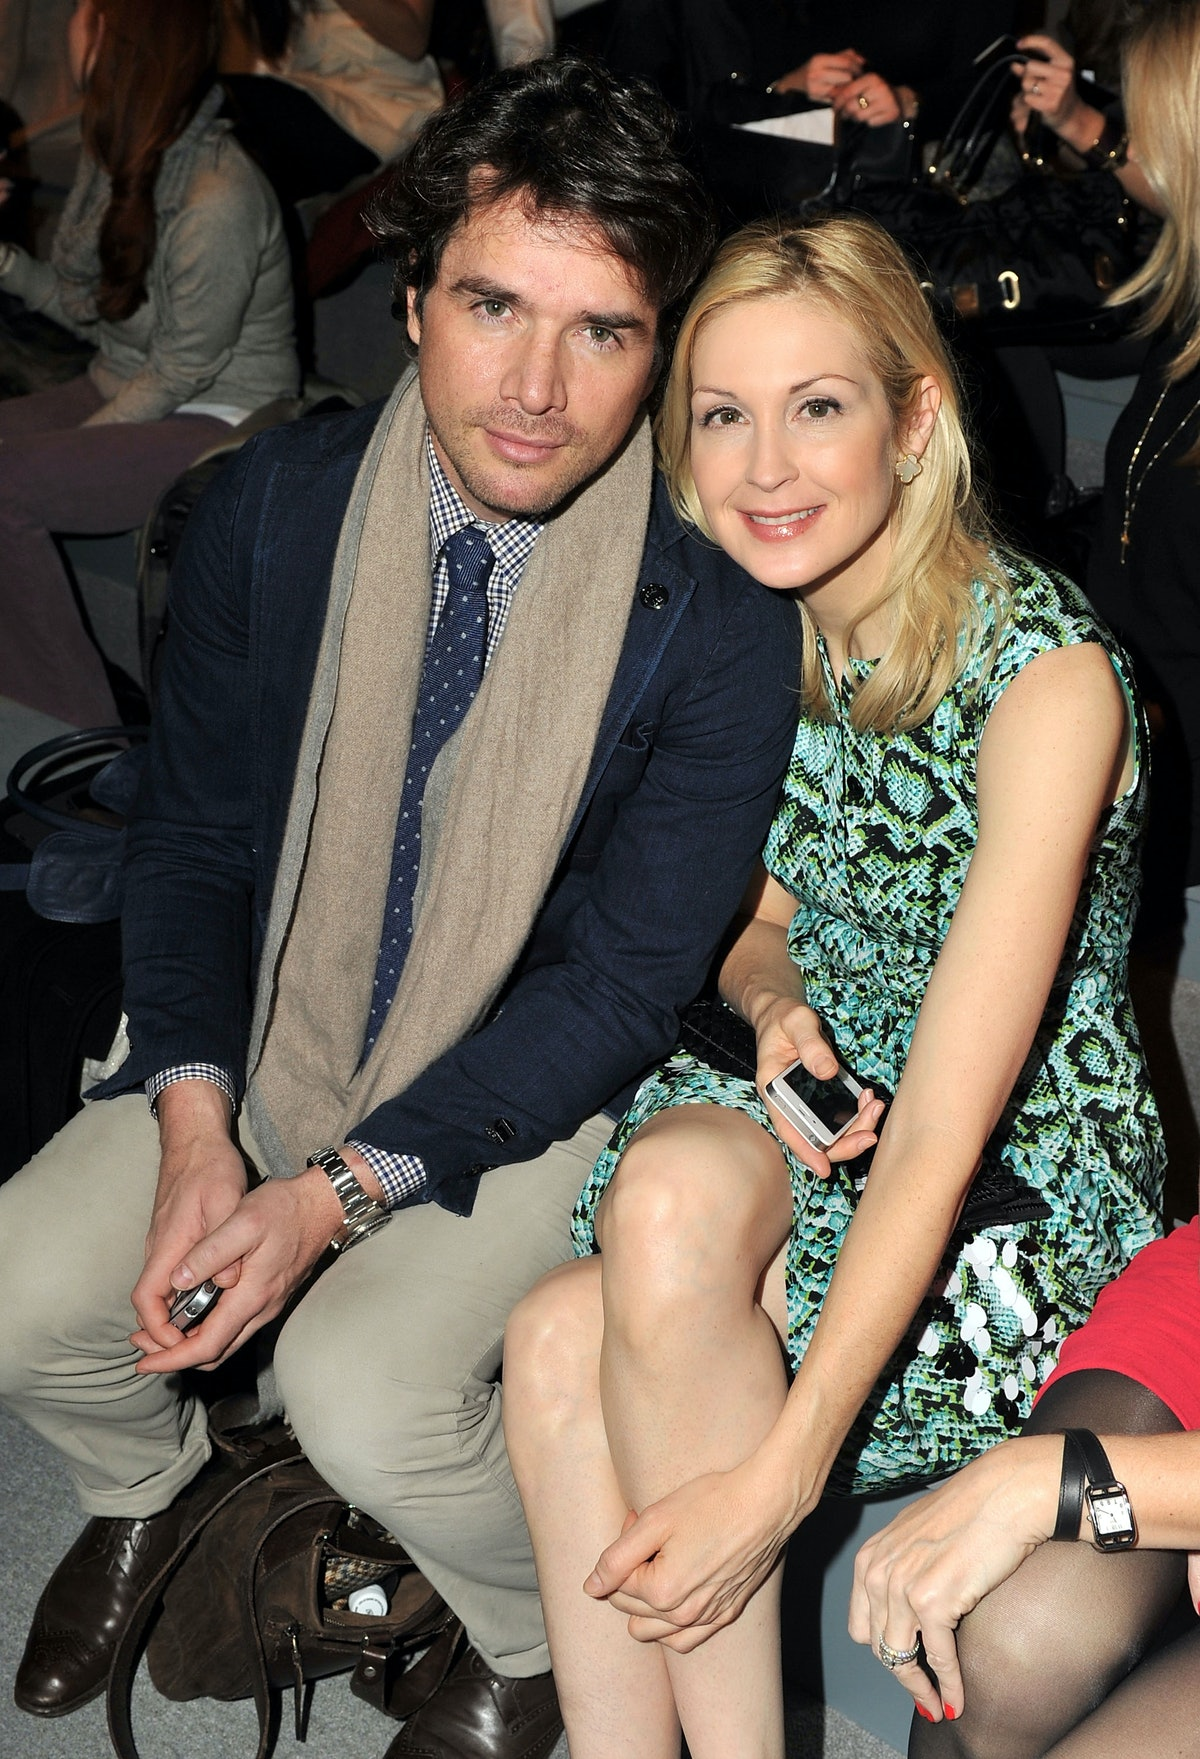 Gossip girl stars dating in real life